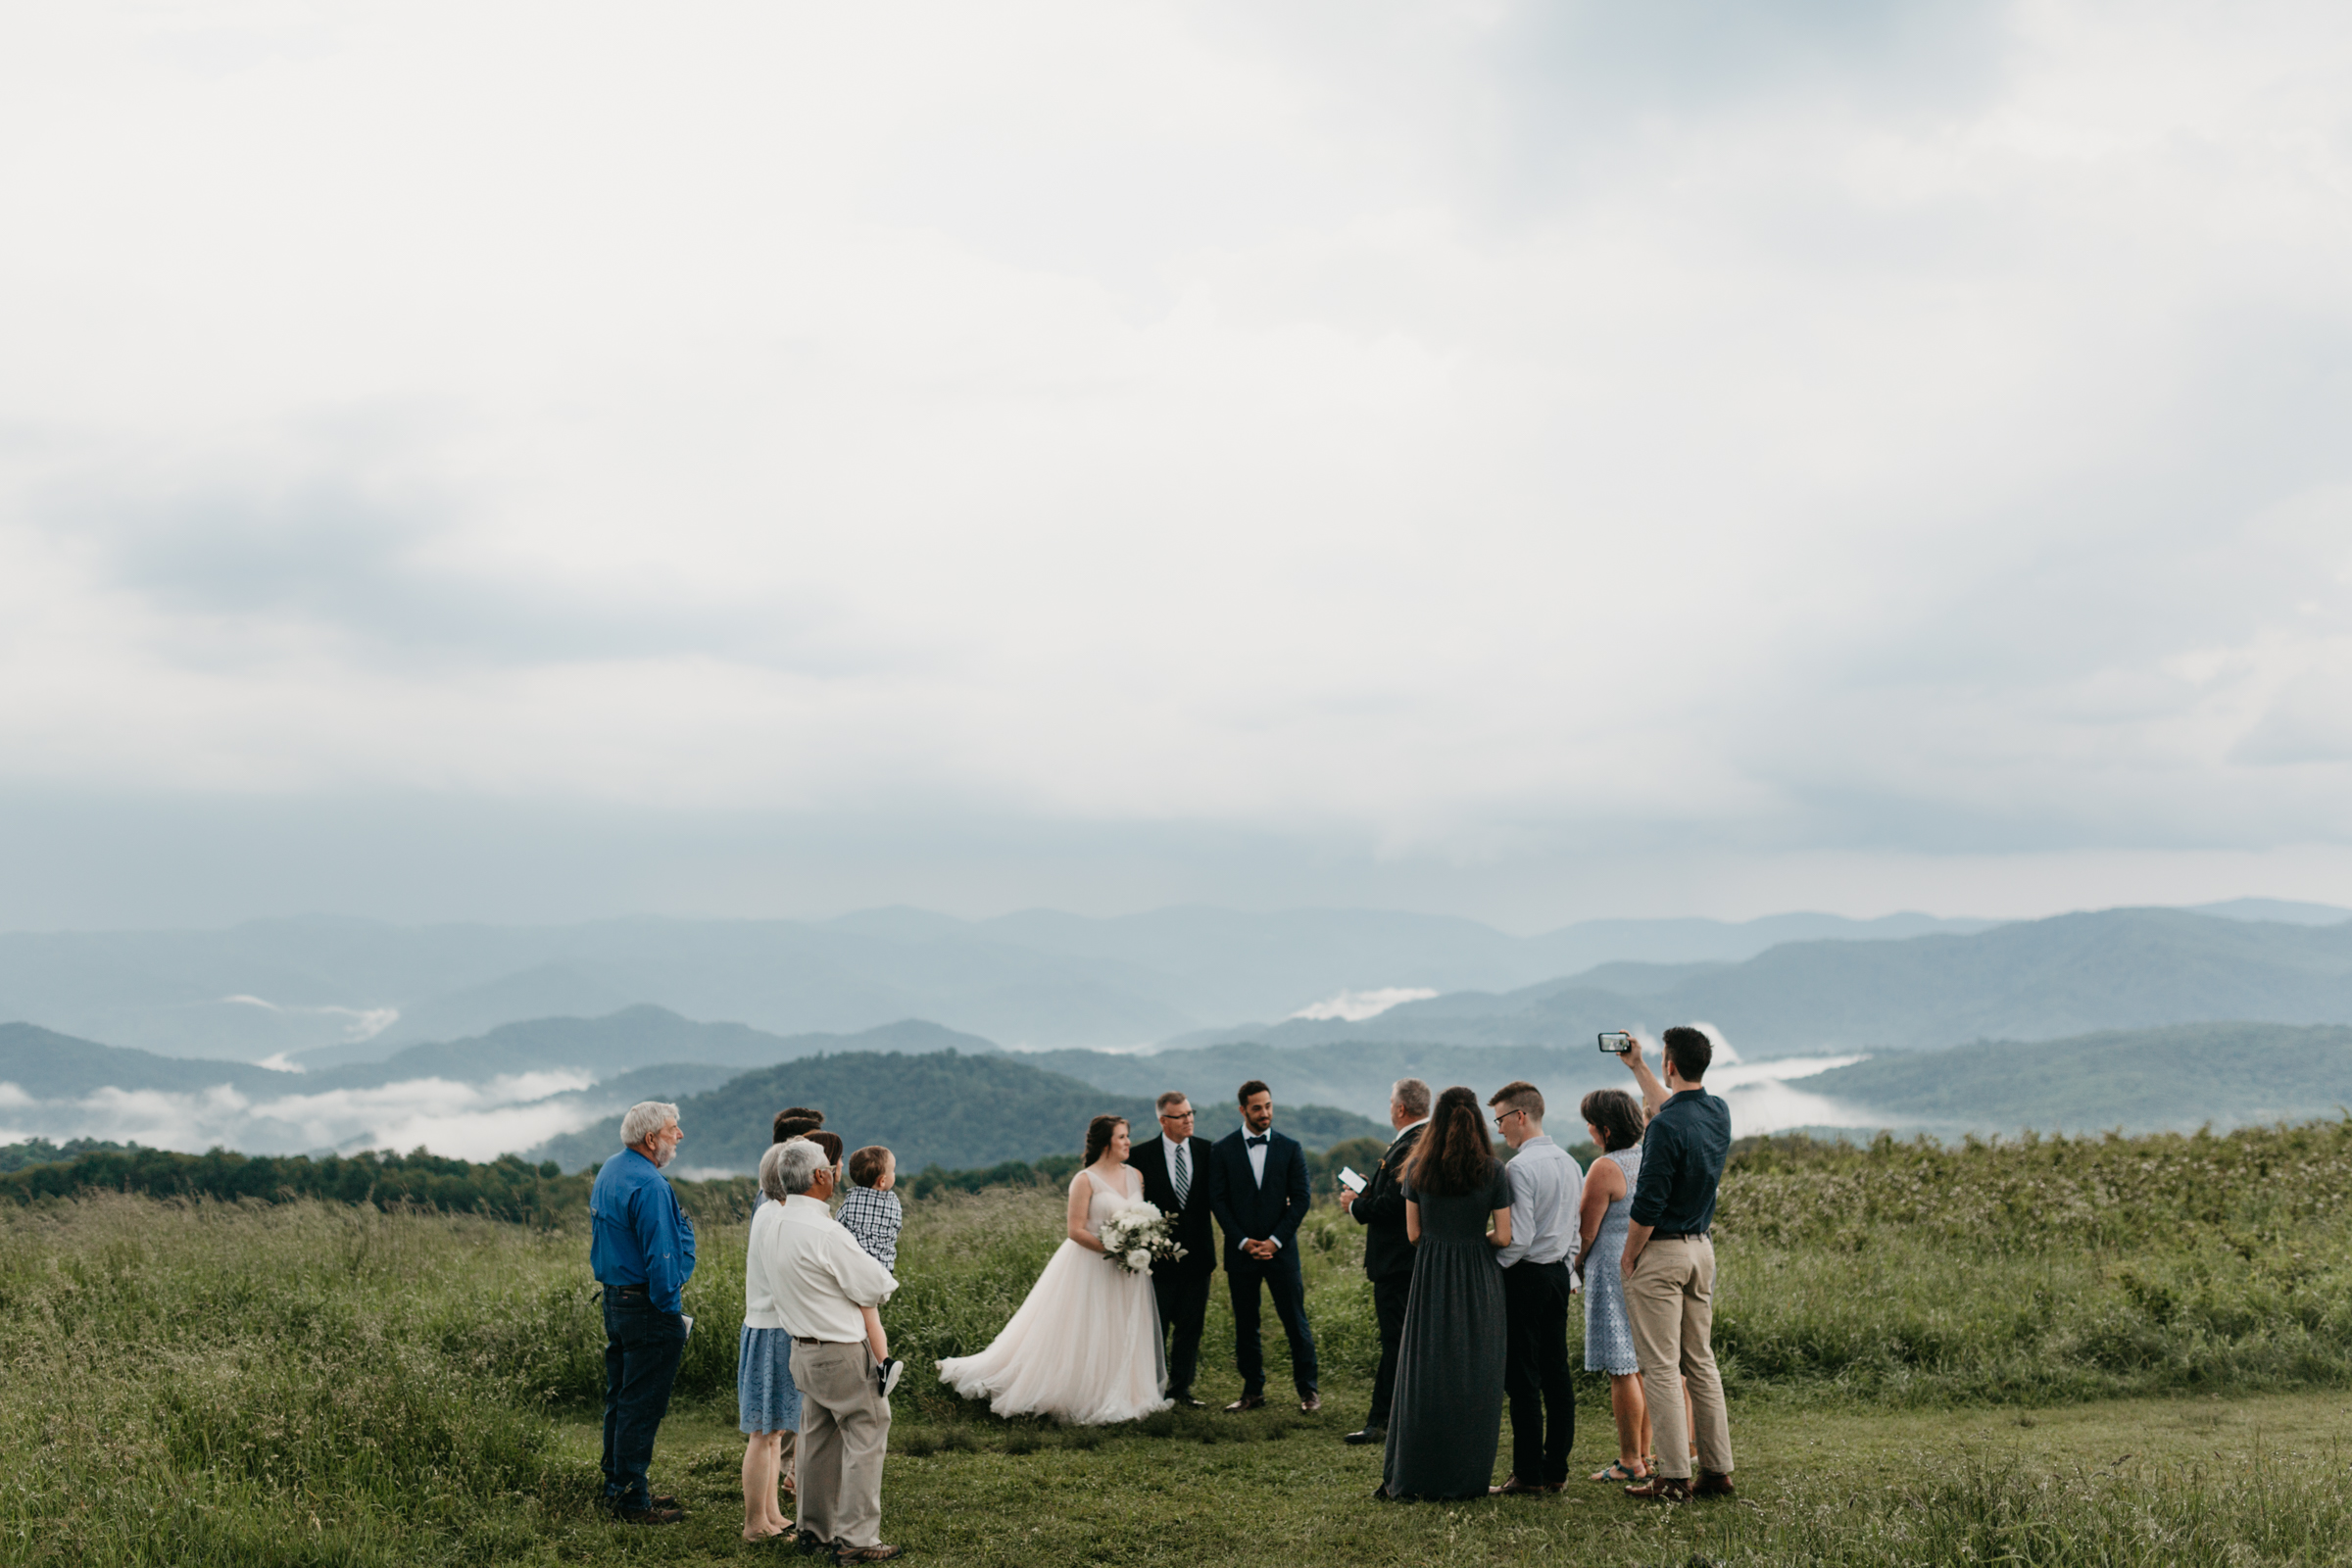 Wedding ceremony at Max Patch on the border of Tennessee and North Carolina.